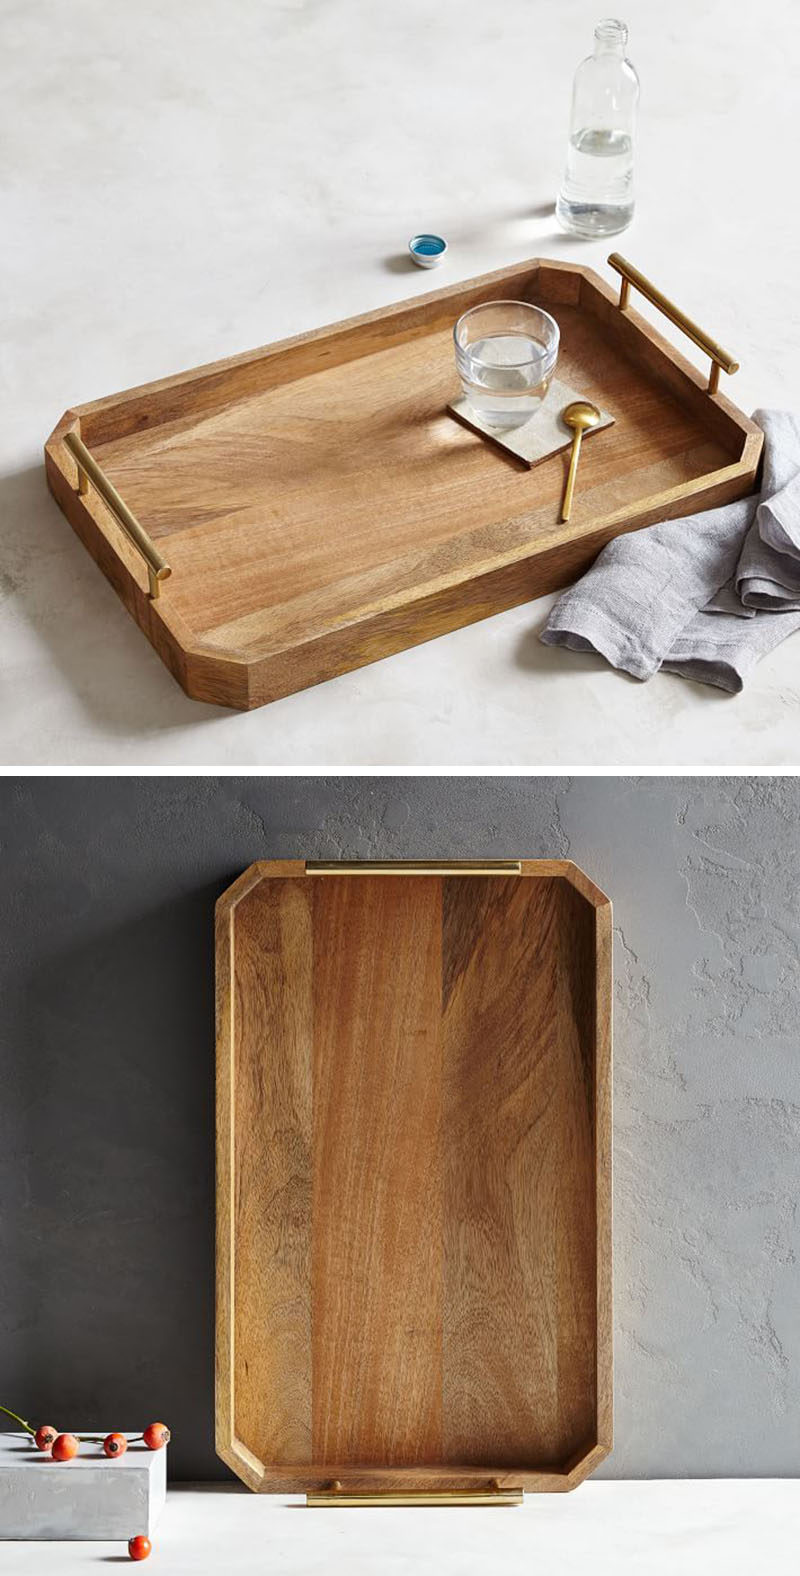 11 decorative wood trays to add a natural touch to your